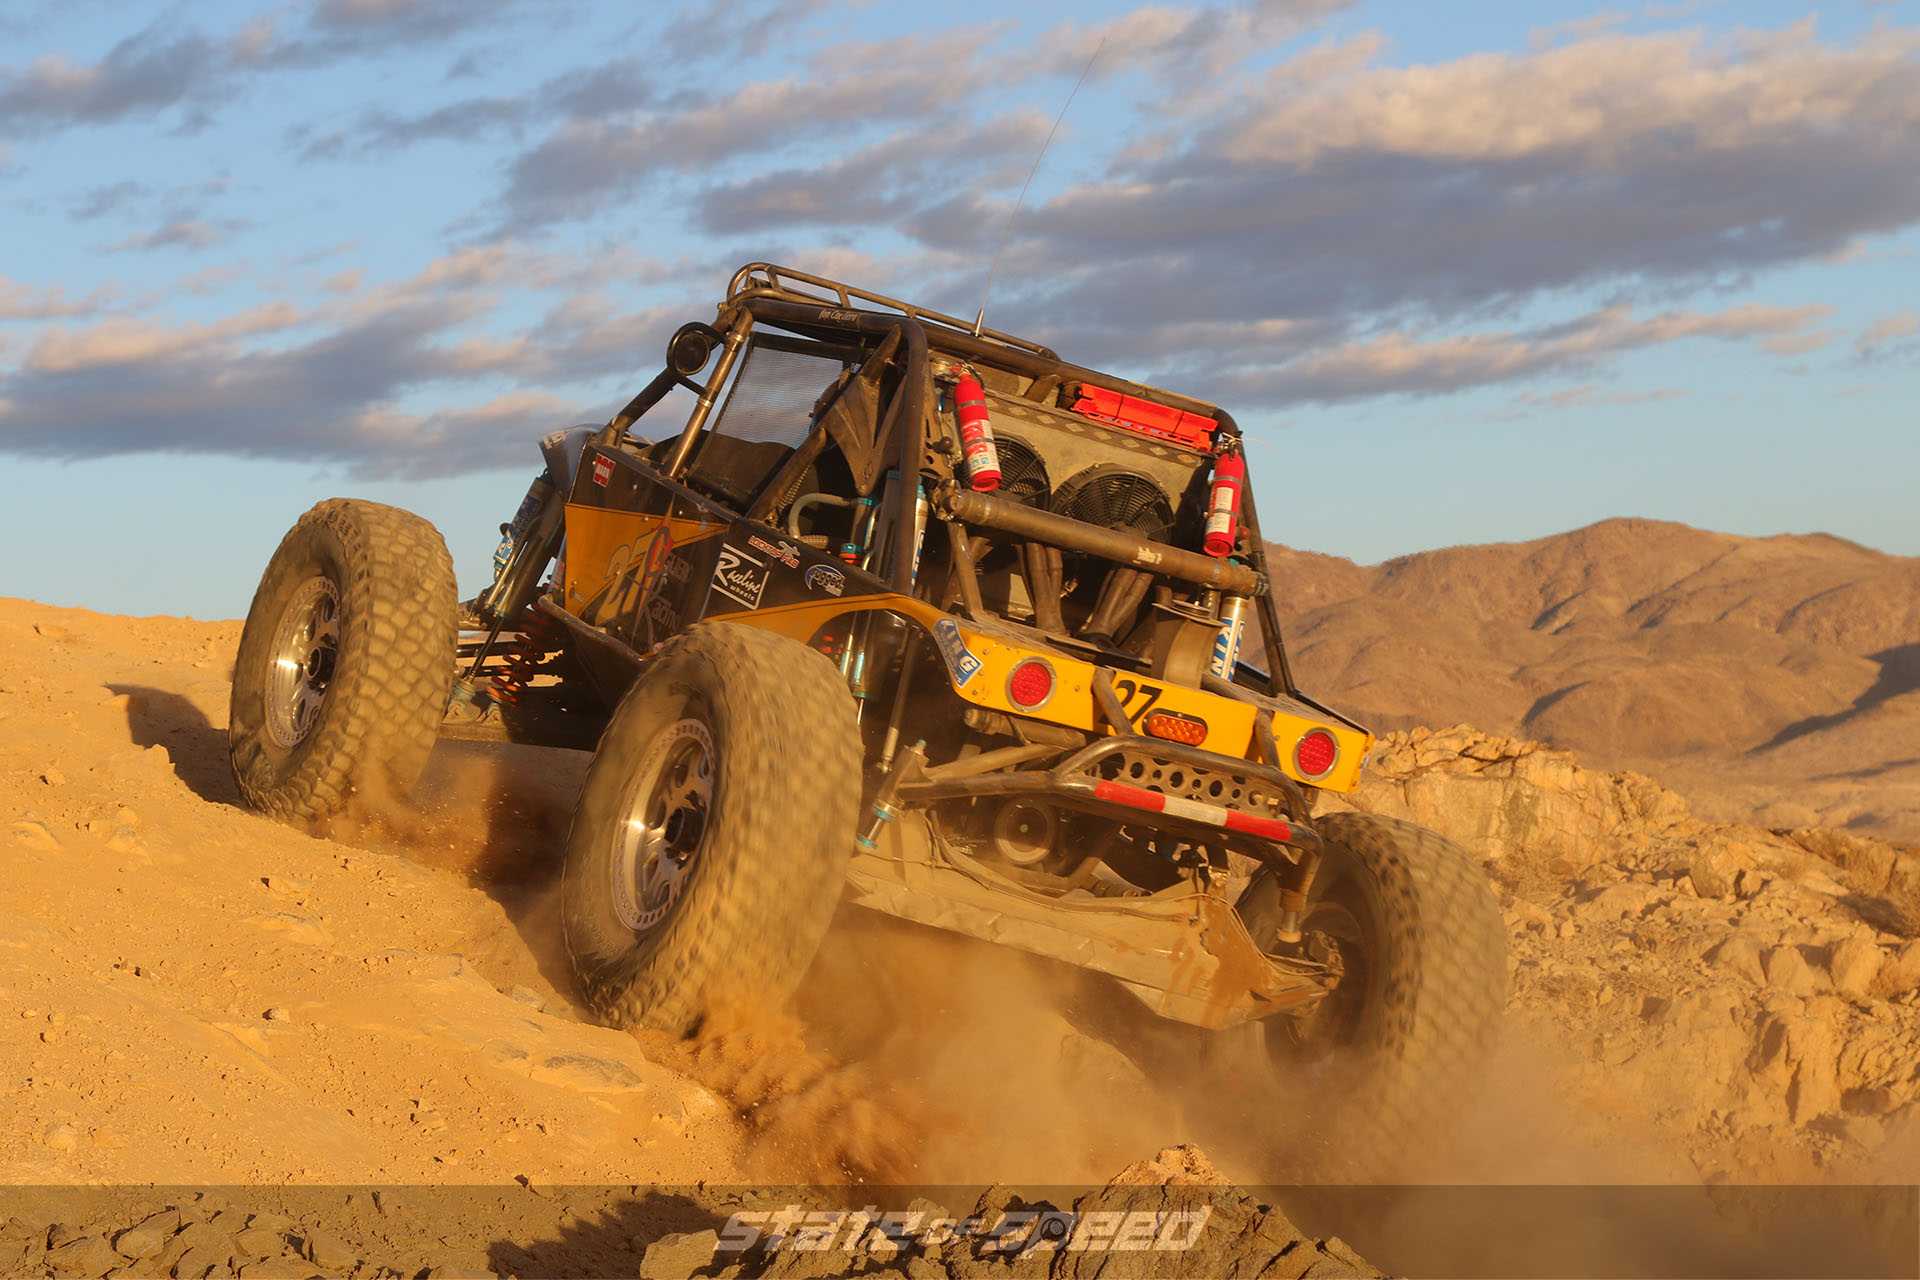 Offroad race vehicle